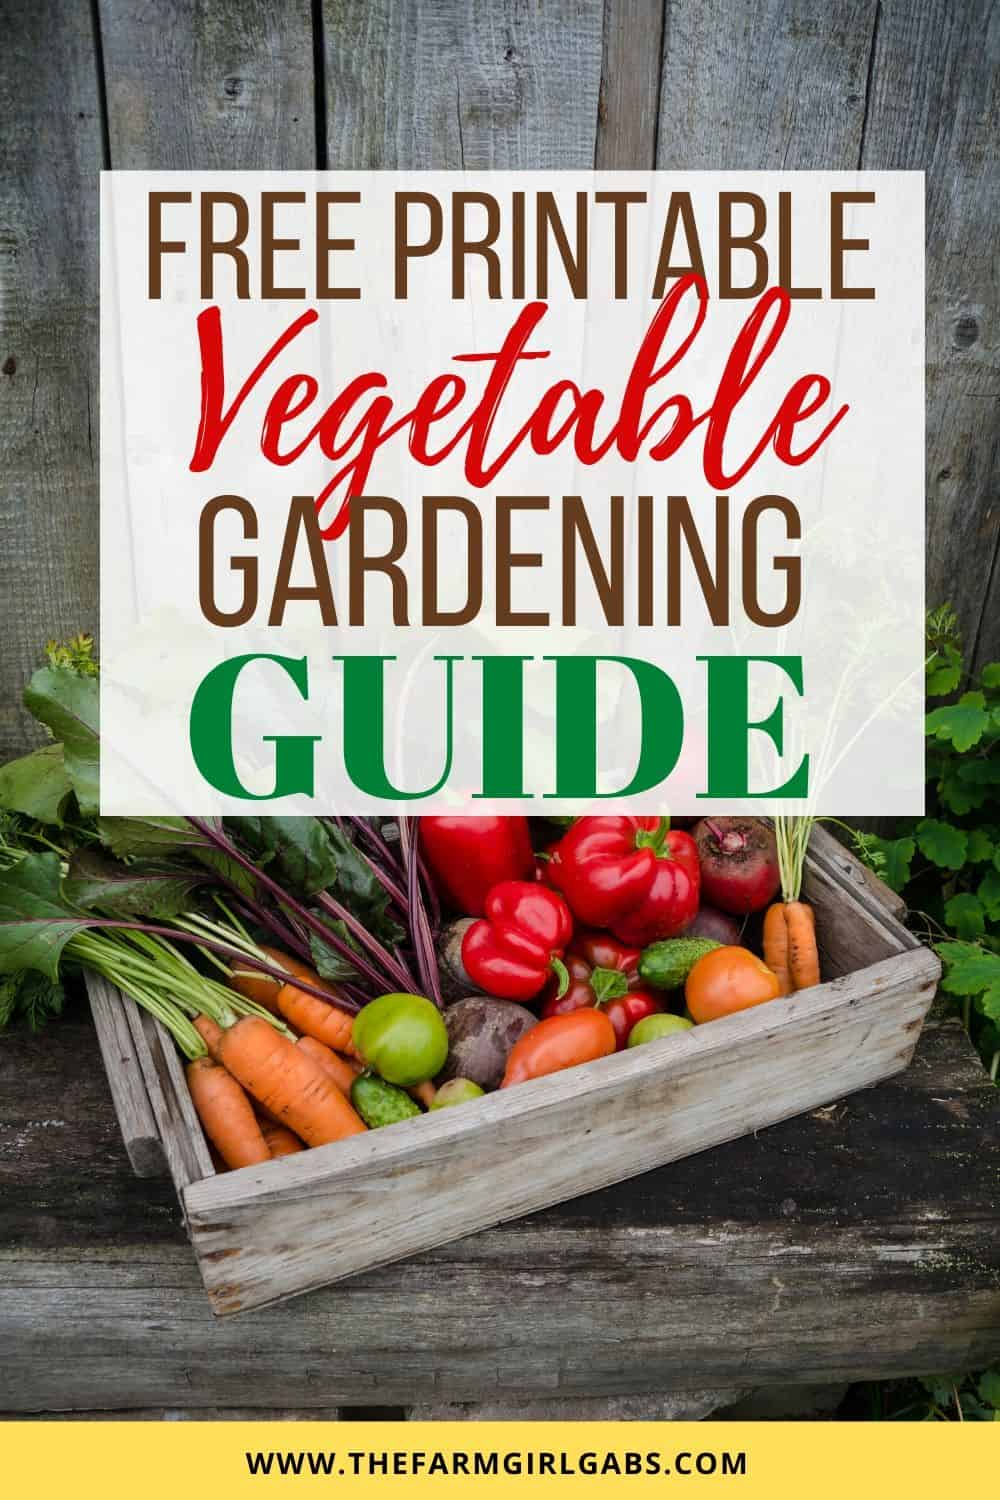 Get Your Garden Growing this summer with this Printable Vegetable Gardening Guide. This free gardening guide will help guide you in planting a spring garden.